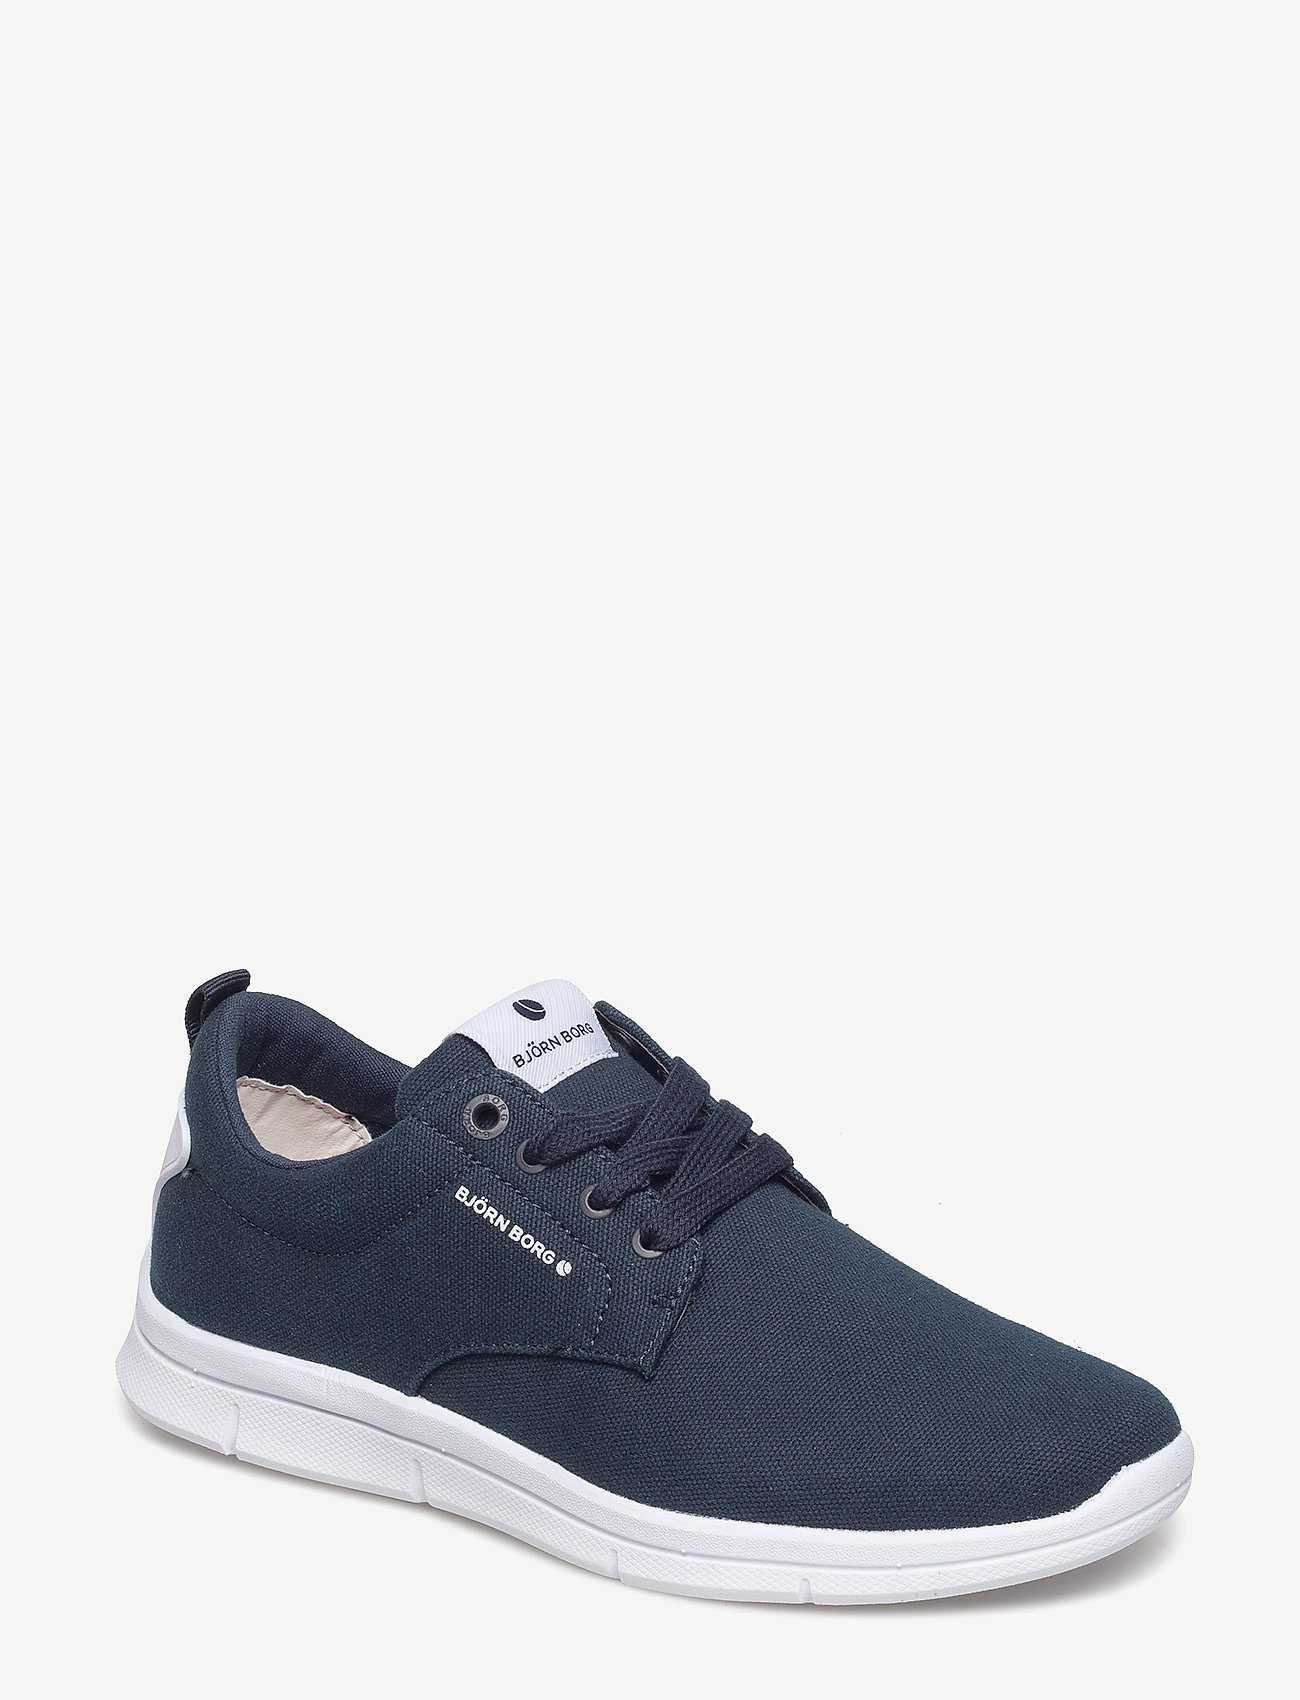 Björn Borg - X200 Low Cvs W - low top sneakers - navy - 0